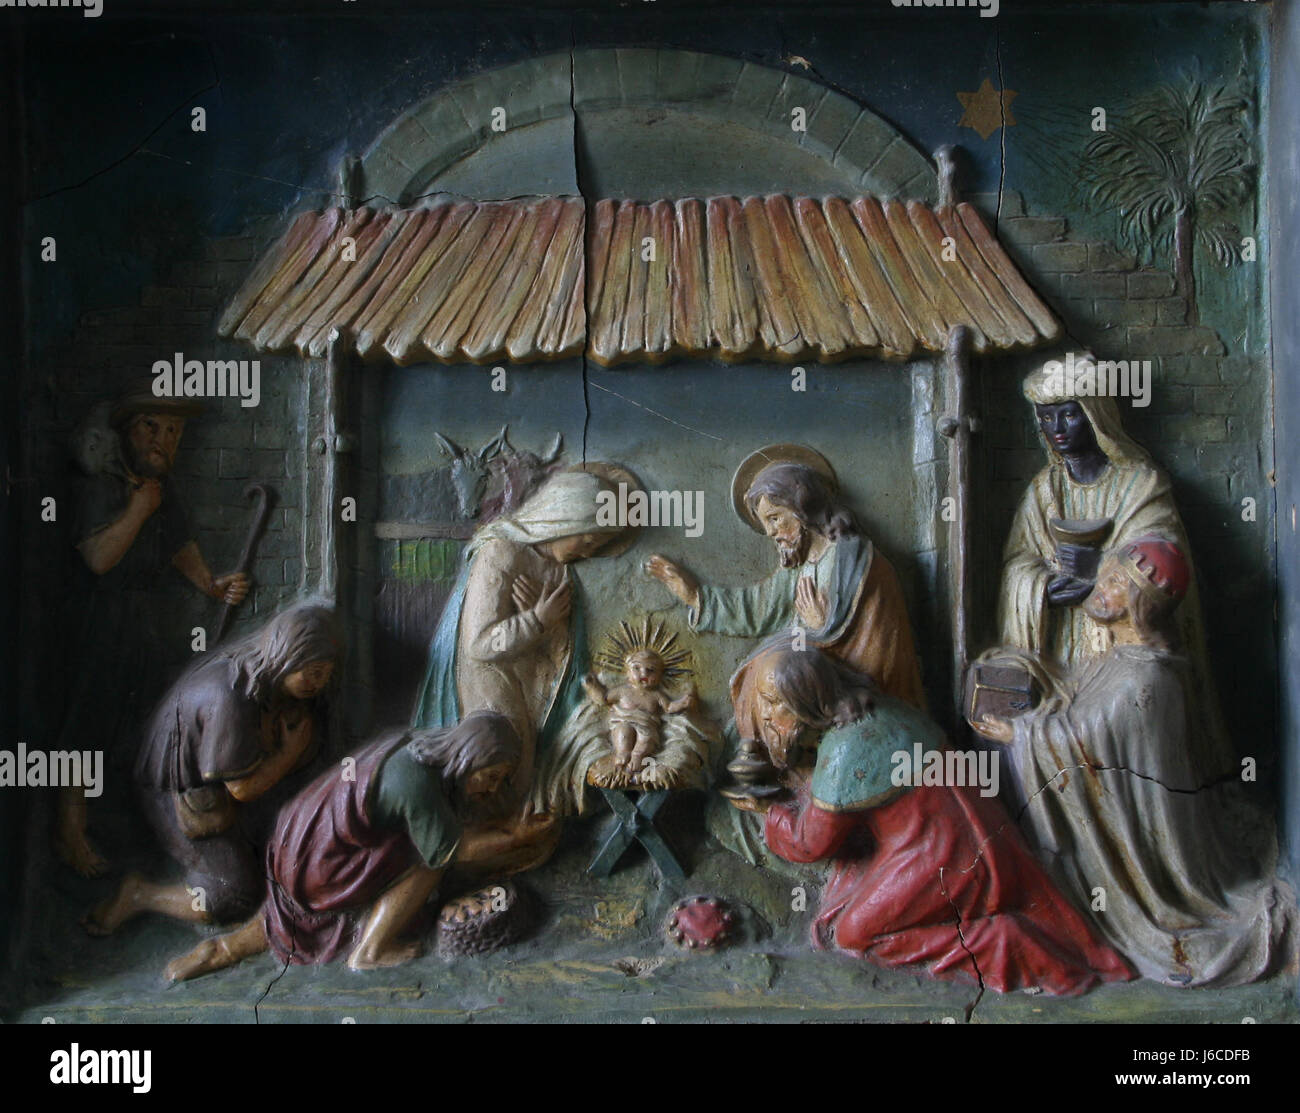 baby jesus manger church stock photos baby jesus manger church